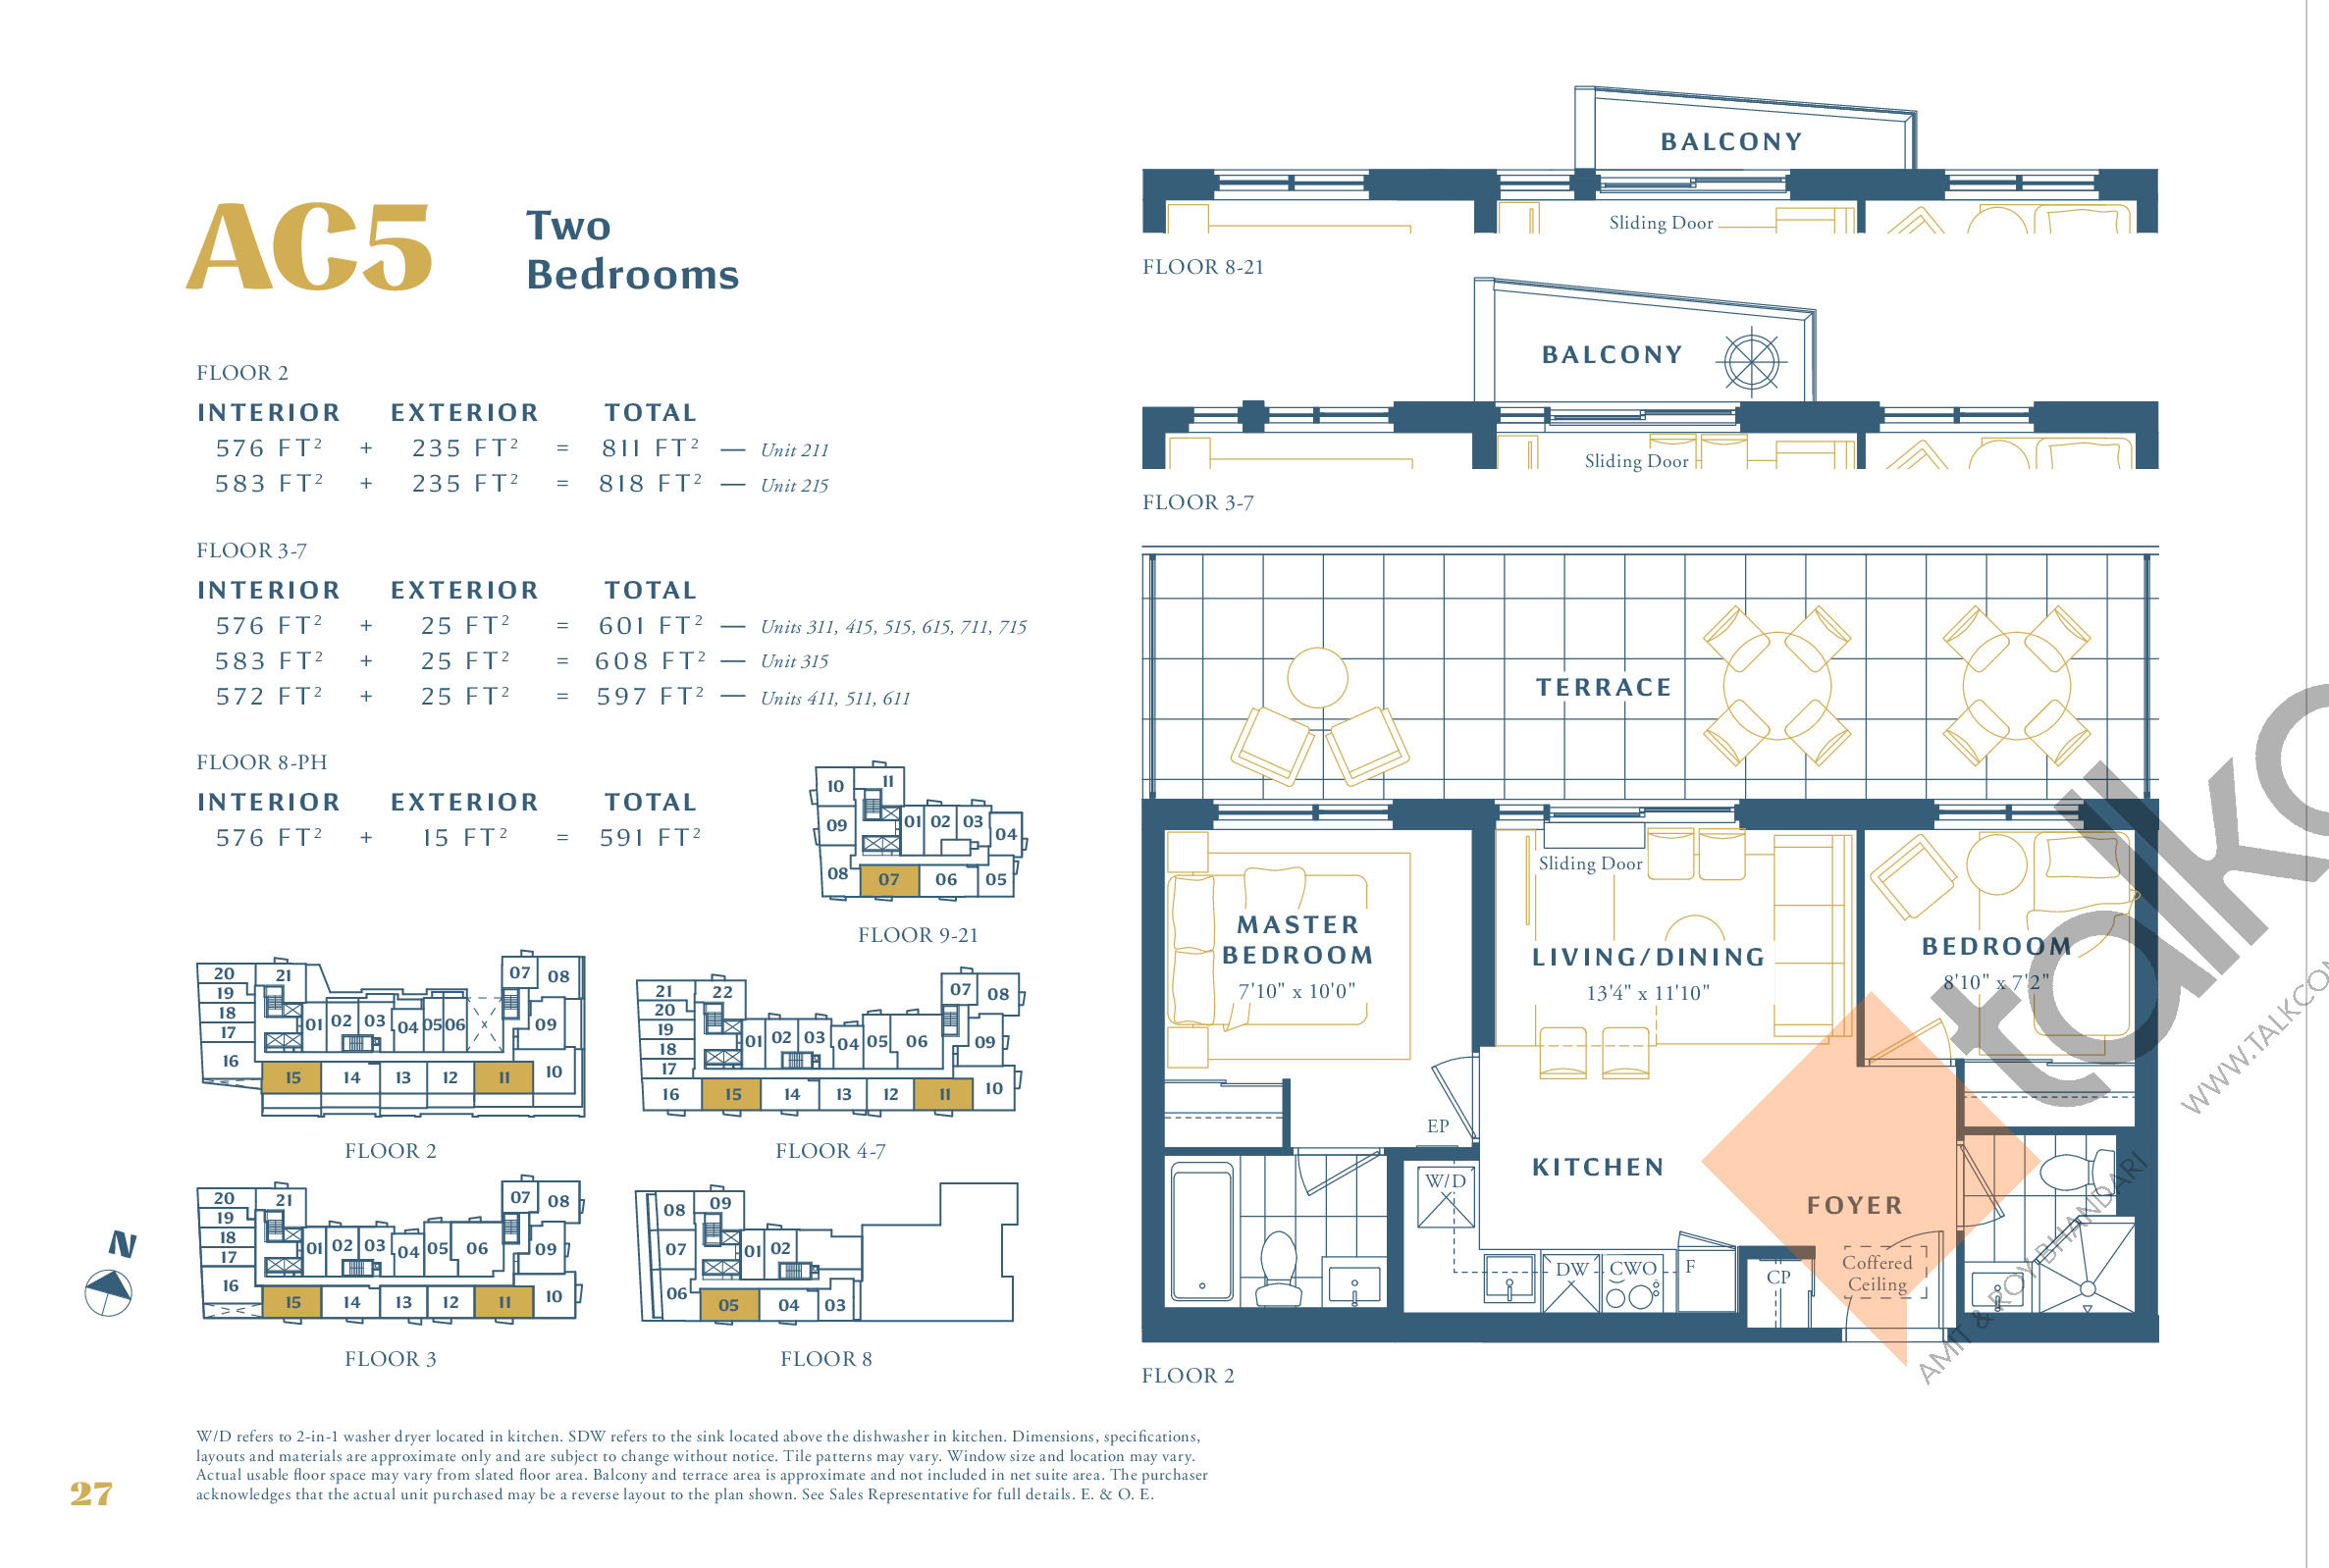 AC5 Floor Plan at The Borough Condos - Tower A - 583 sq.ft